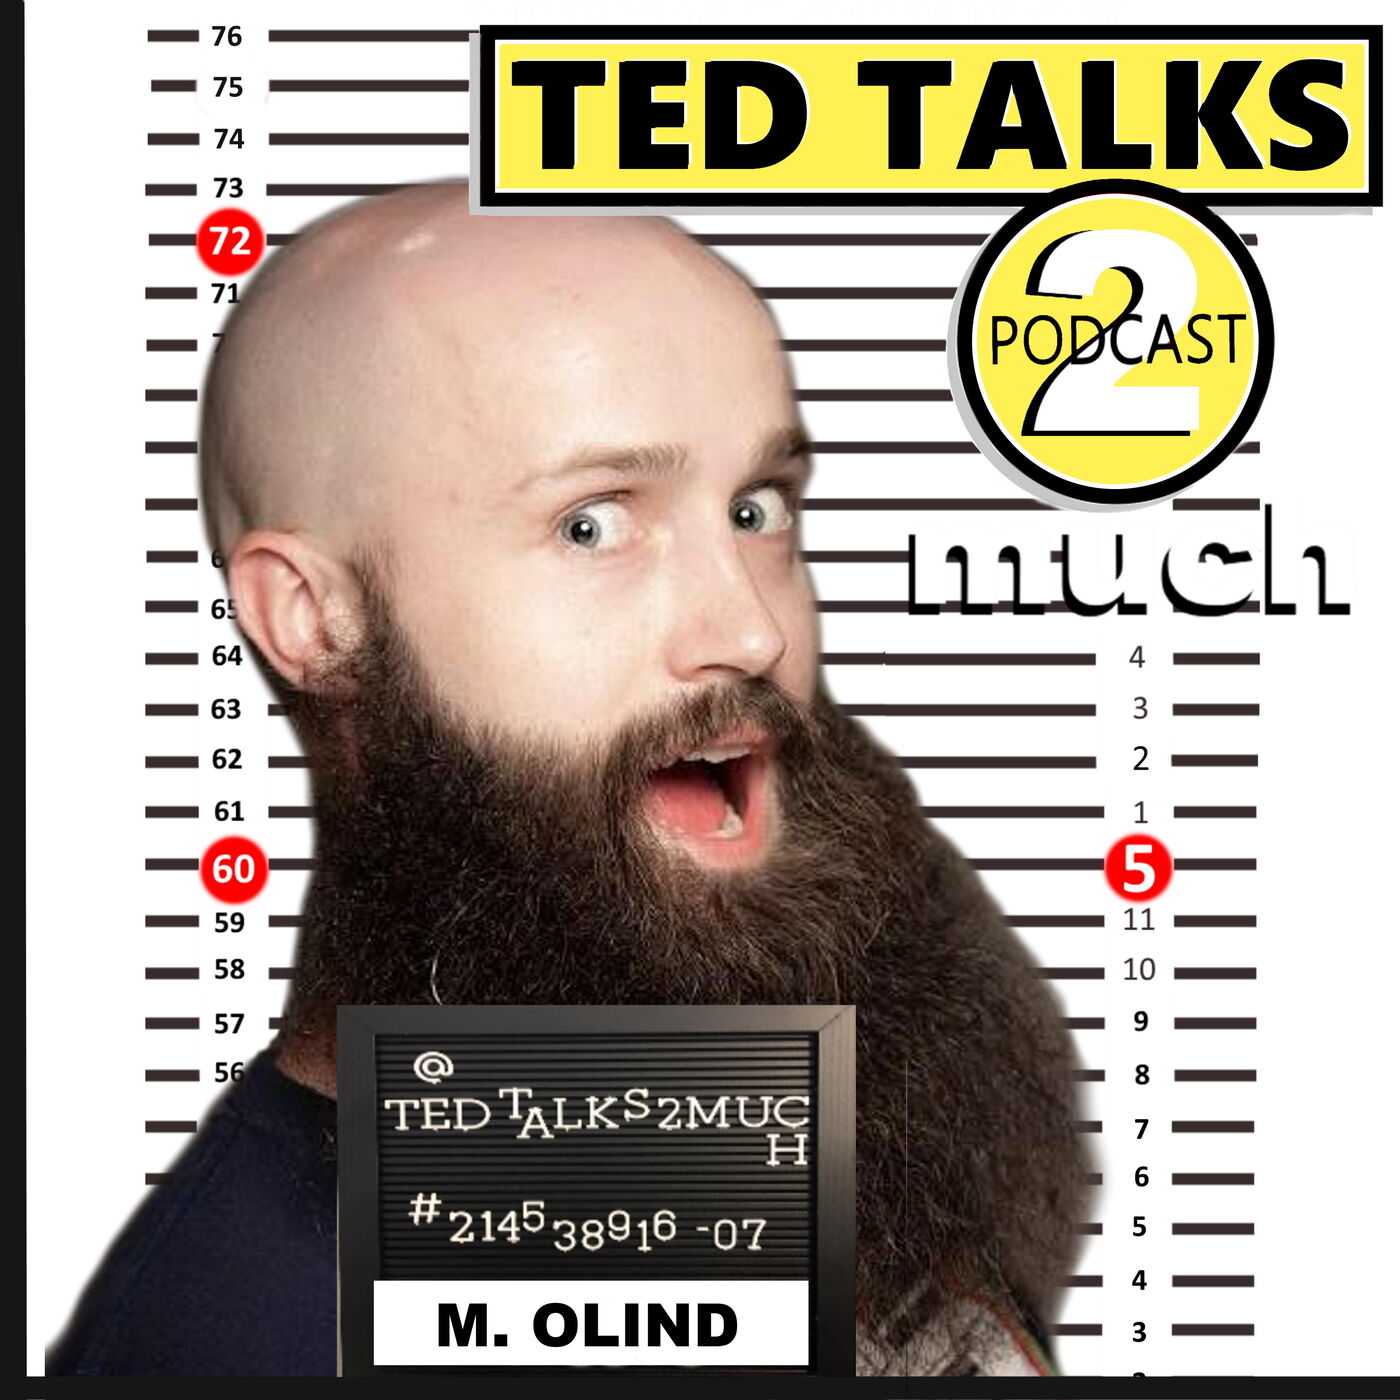 TED TALKS 2 Marcus Olind (Way 2 Much)... about Hollywood, Heckler & Managers.